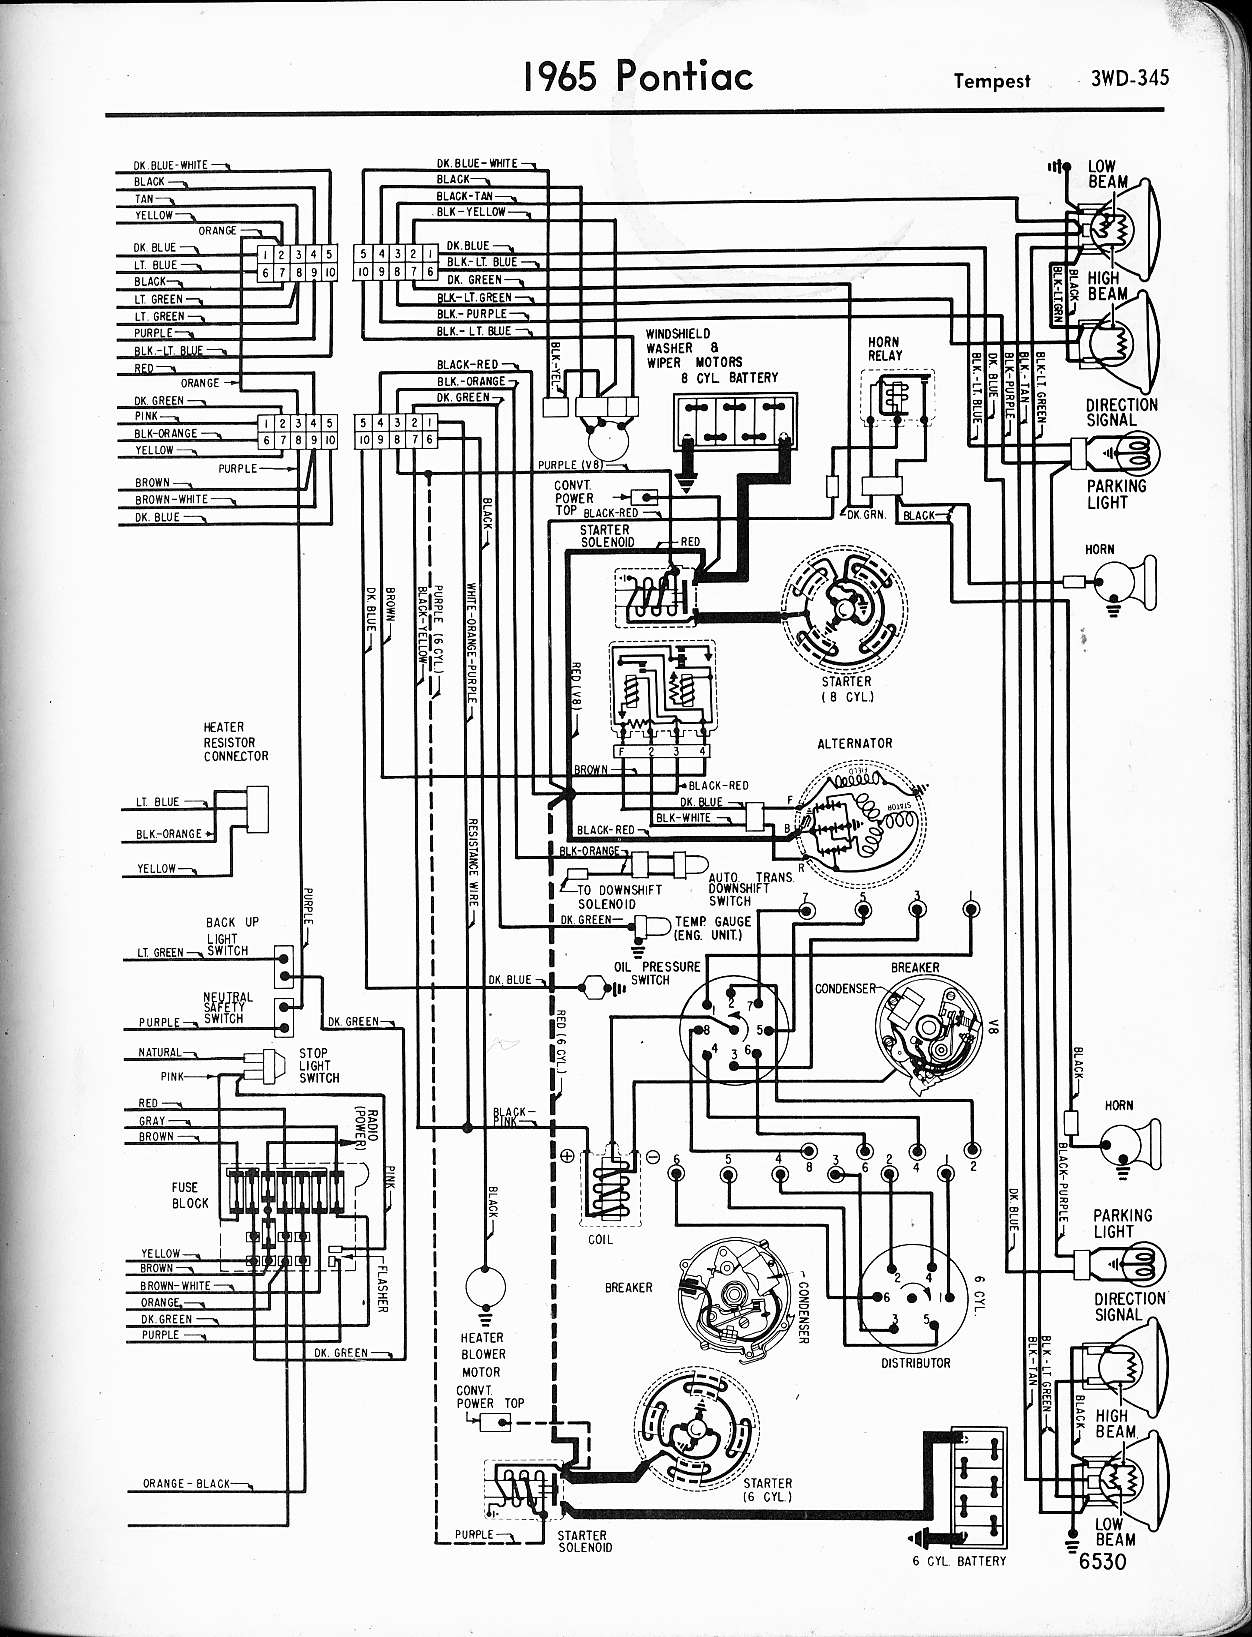 1965 tempest, right page  wallace racing - wiring diagrams 1965 tempest,  right page  1989 engine diagram pontiac